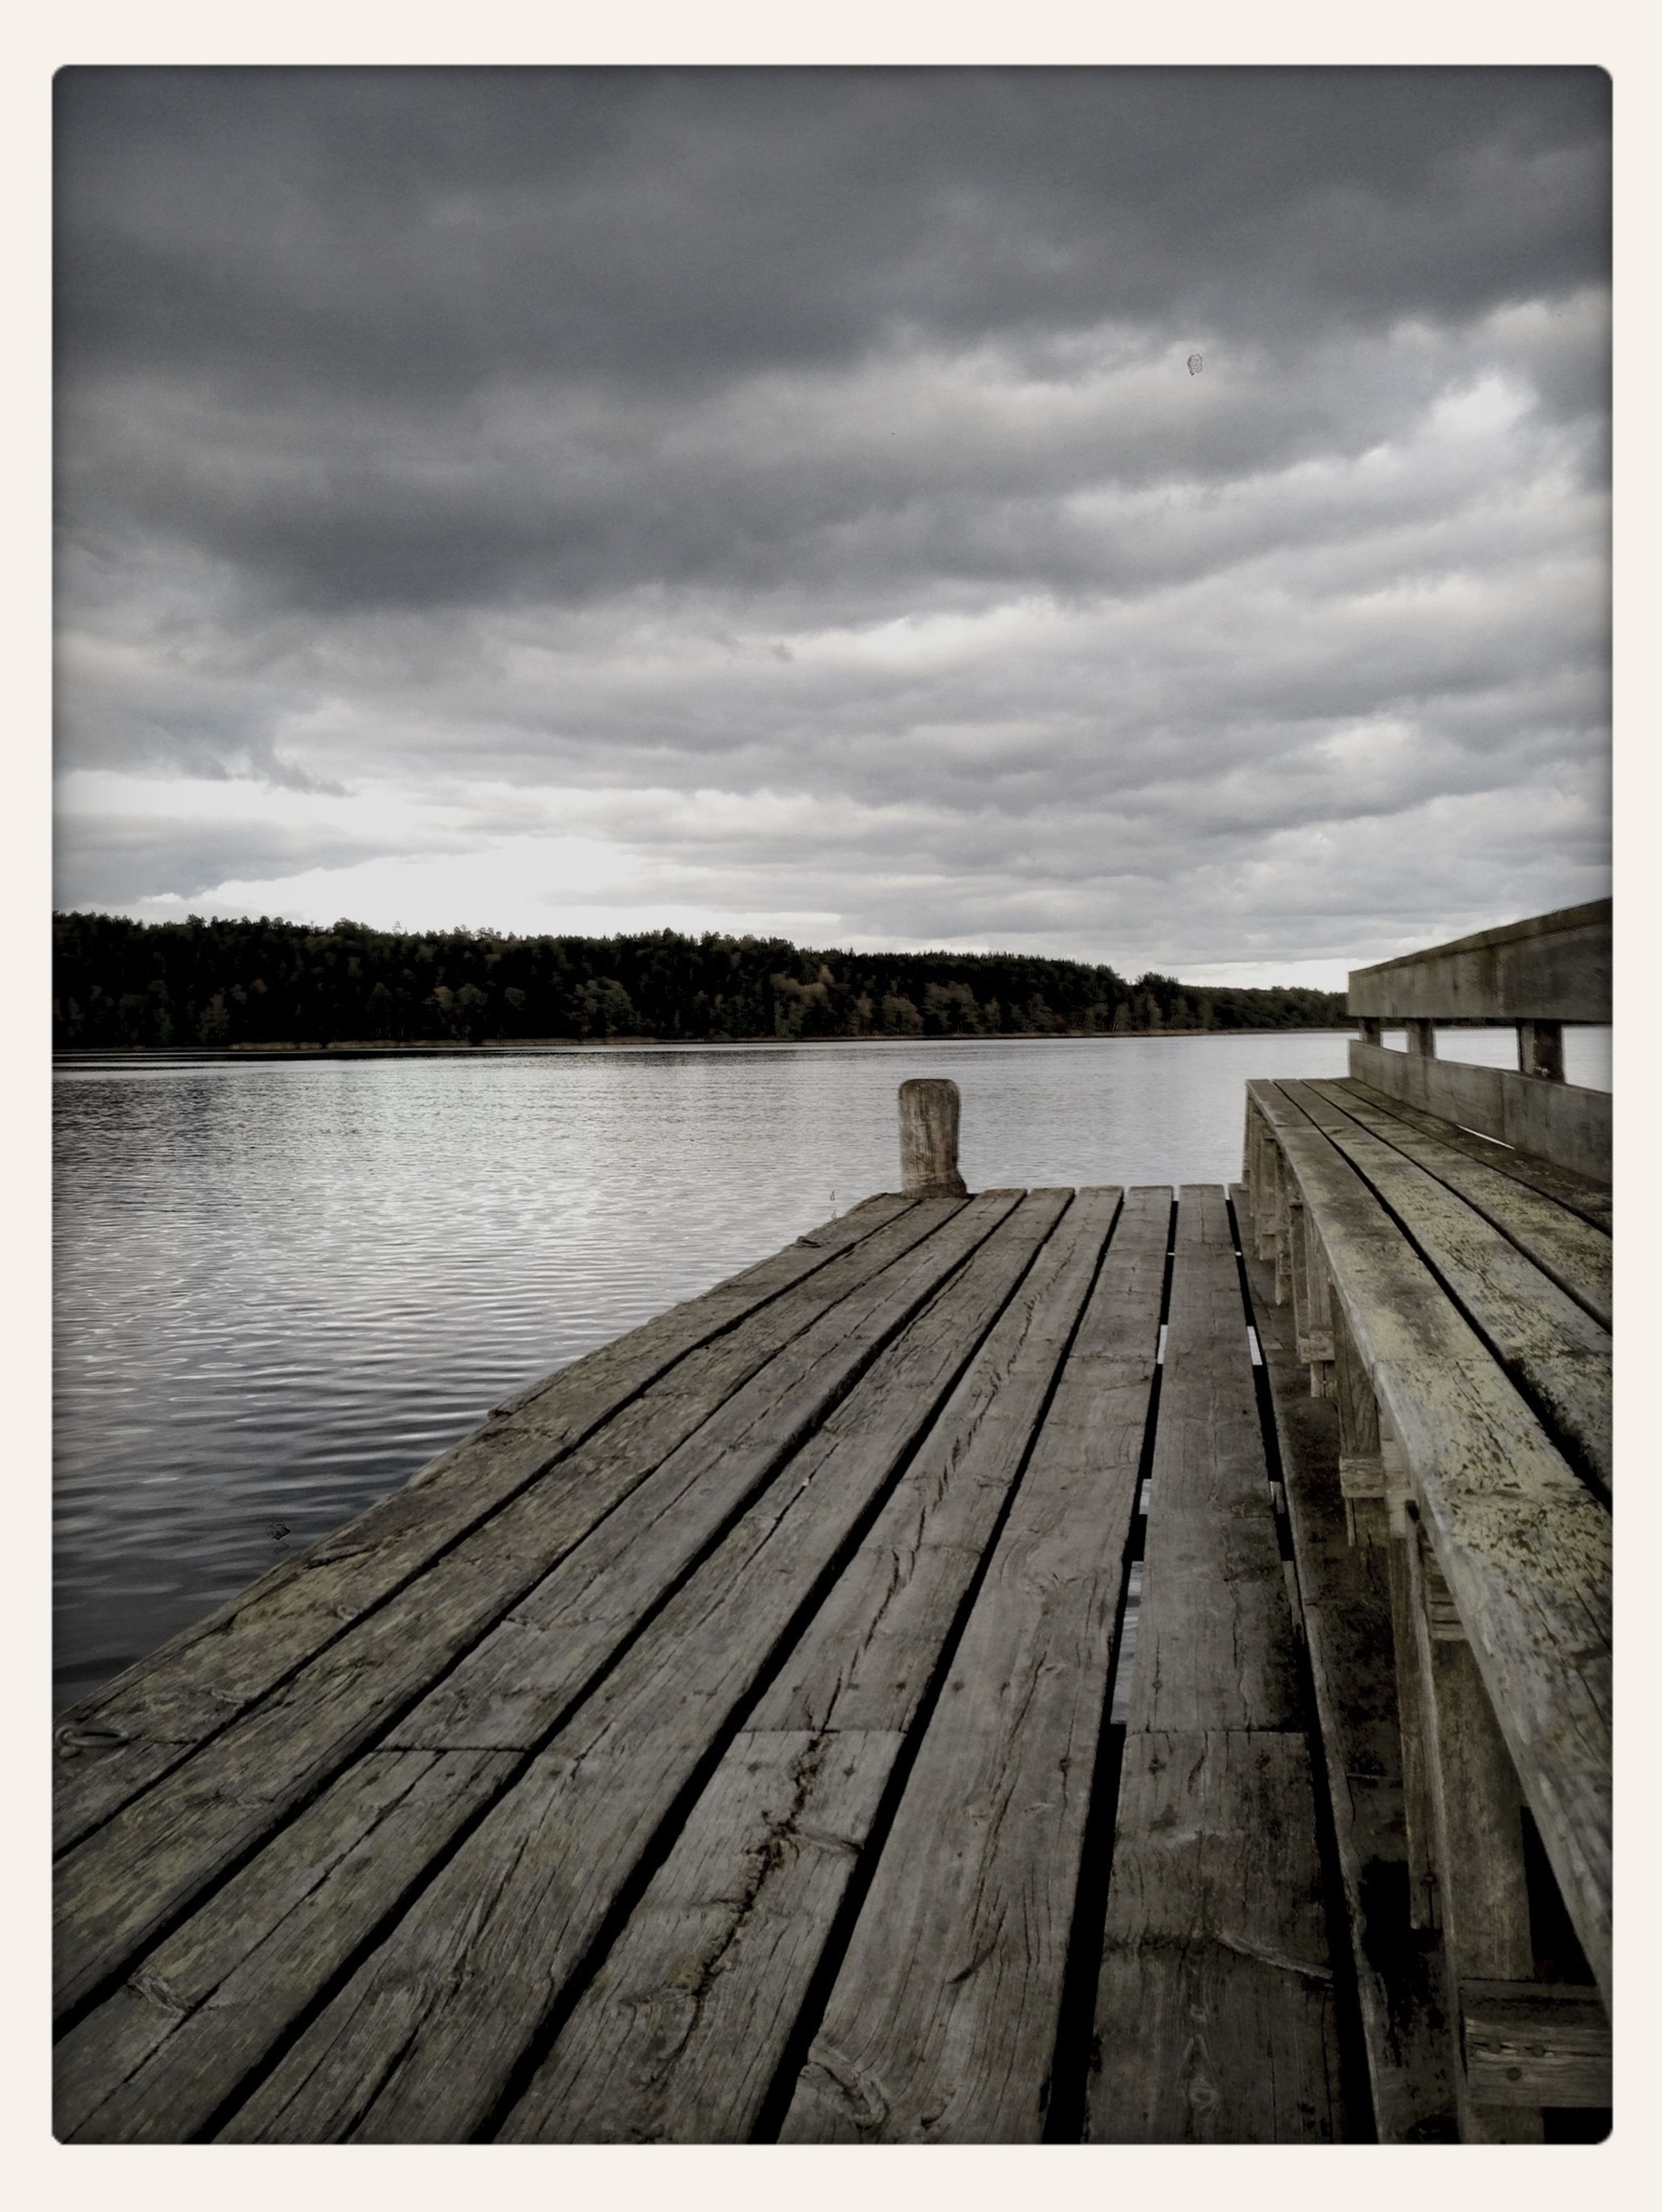 the way forward, sky, water, pier, cloud - sky, wood - material, transfer print, diminishing perspective, tranquil scene, tranquility, railing, boardwalk, lake, auto post production filter, cloudy, cloud, jetty, vanishing point, nature, wood